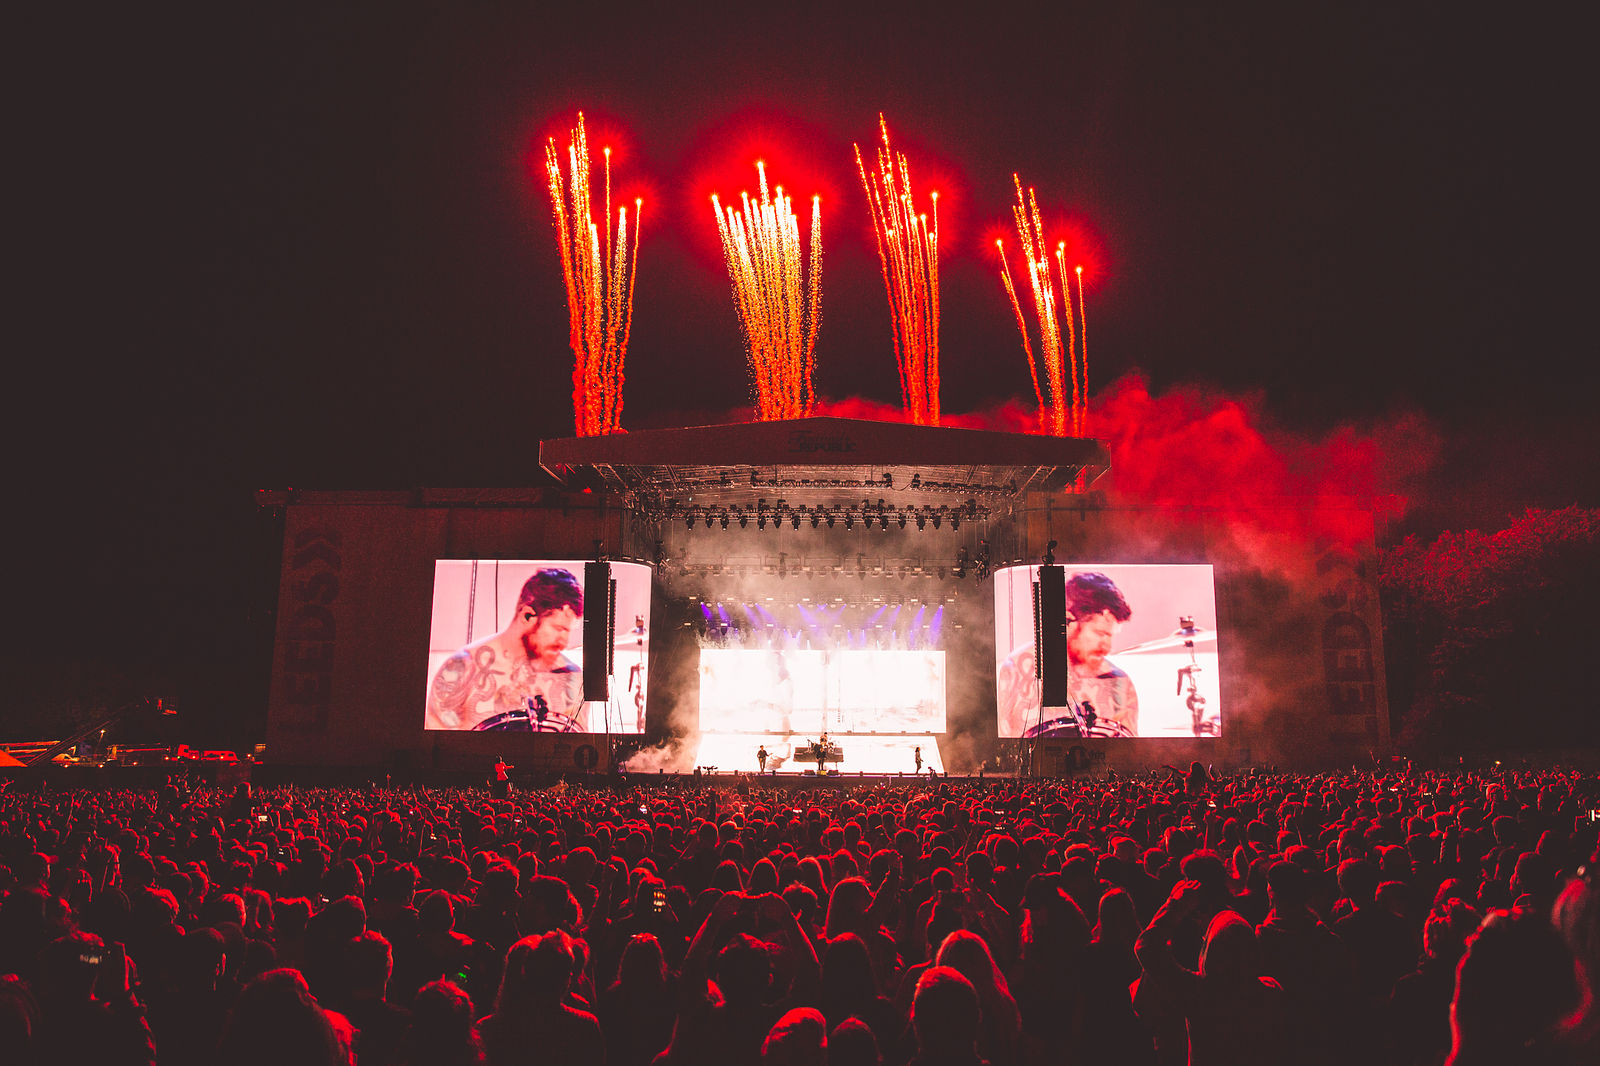 FALL OUT BOY HEADLINING SECOND DAY AT LEEDS FESTIVAL 2018 - 25.08.2018  PICTURE BY: LEWIS EVANS